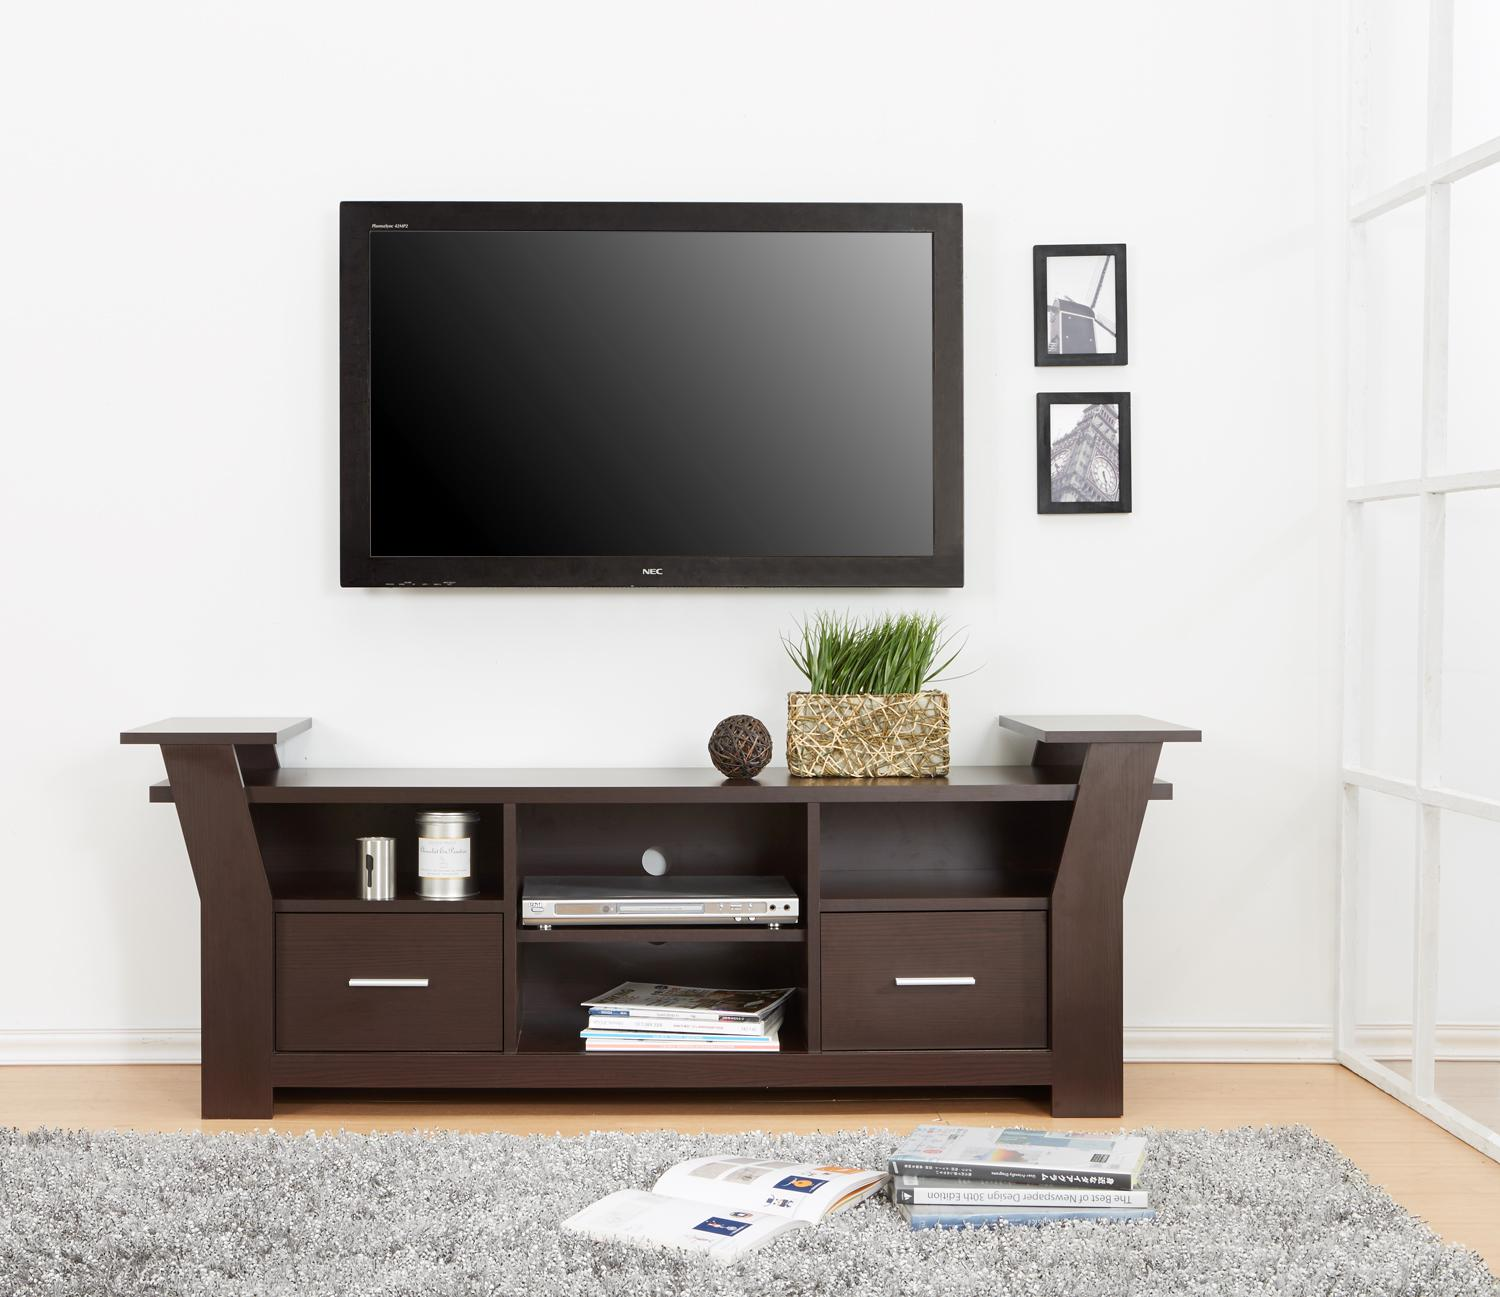 furniture of america enitial lab torena multistorage tv stand  - enitial lab torena multistorage tv stand walnut